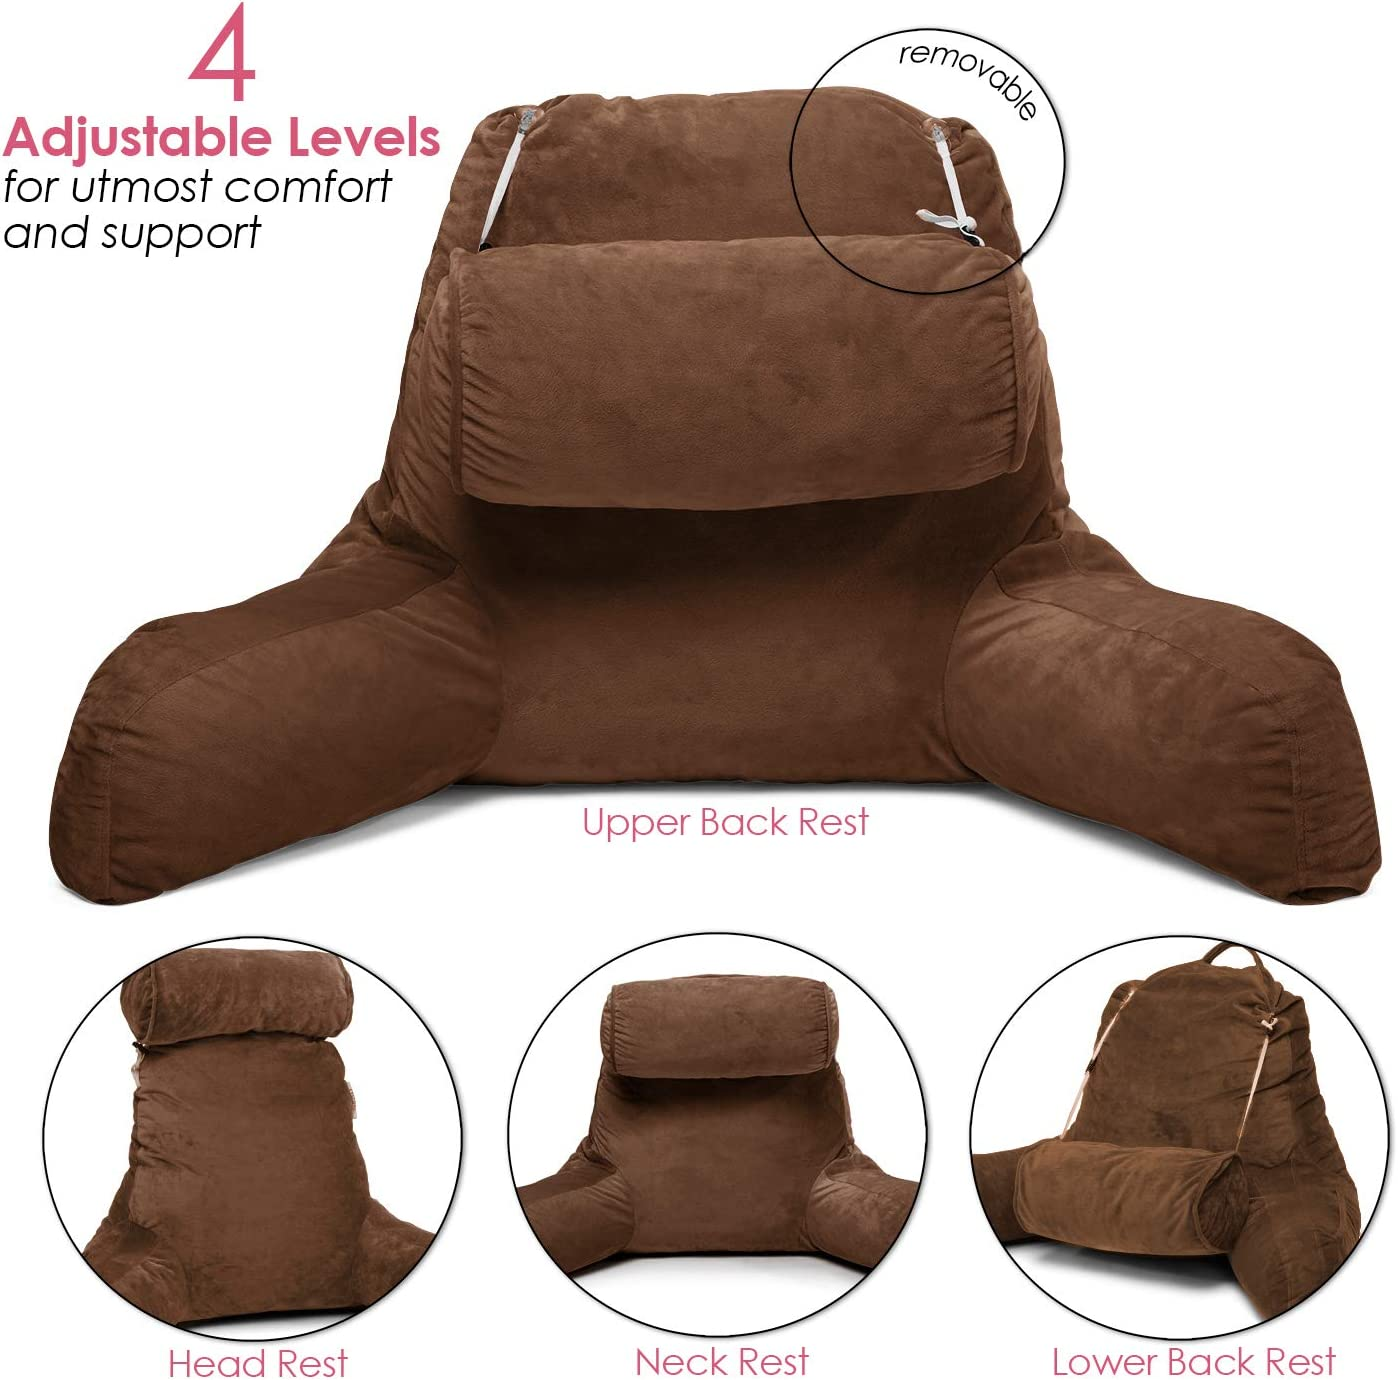 Clara Clark Bed Rest Reading Pillow with Arms and Pockets Premium Shredded Memory Foam, Detachable Neck Roll & Lumbar Support, Large, Brown: Home & Kitchen